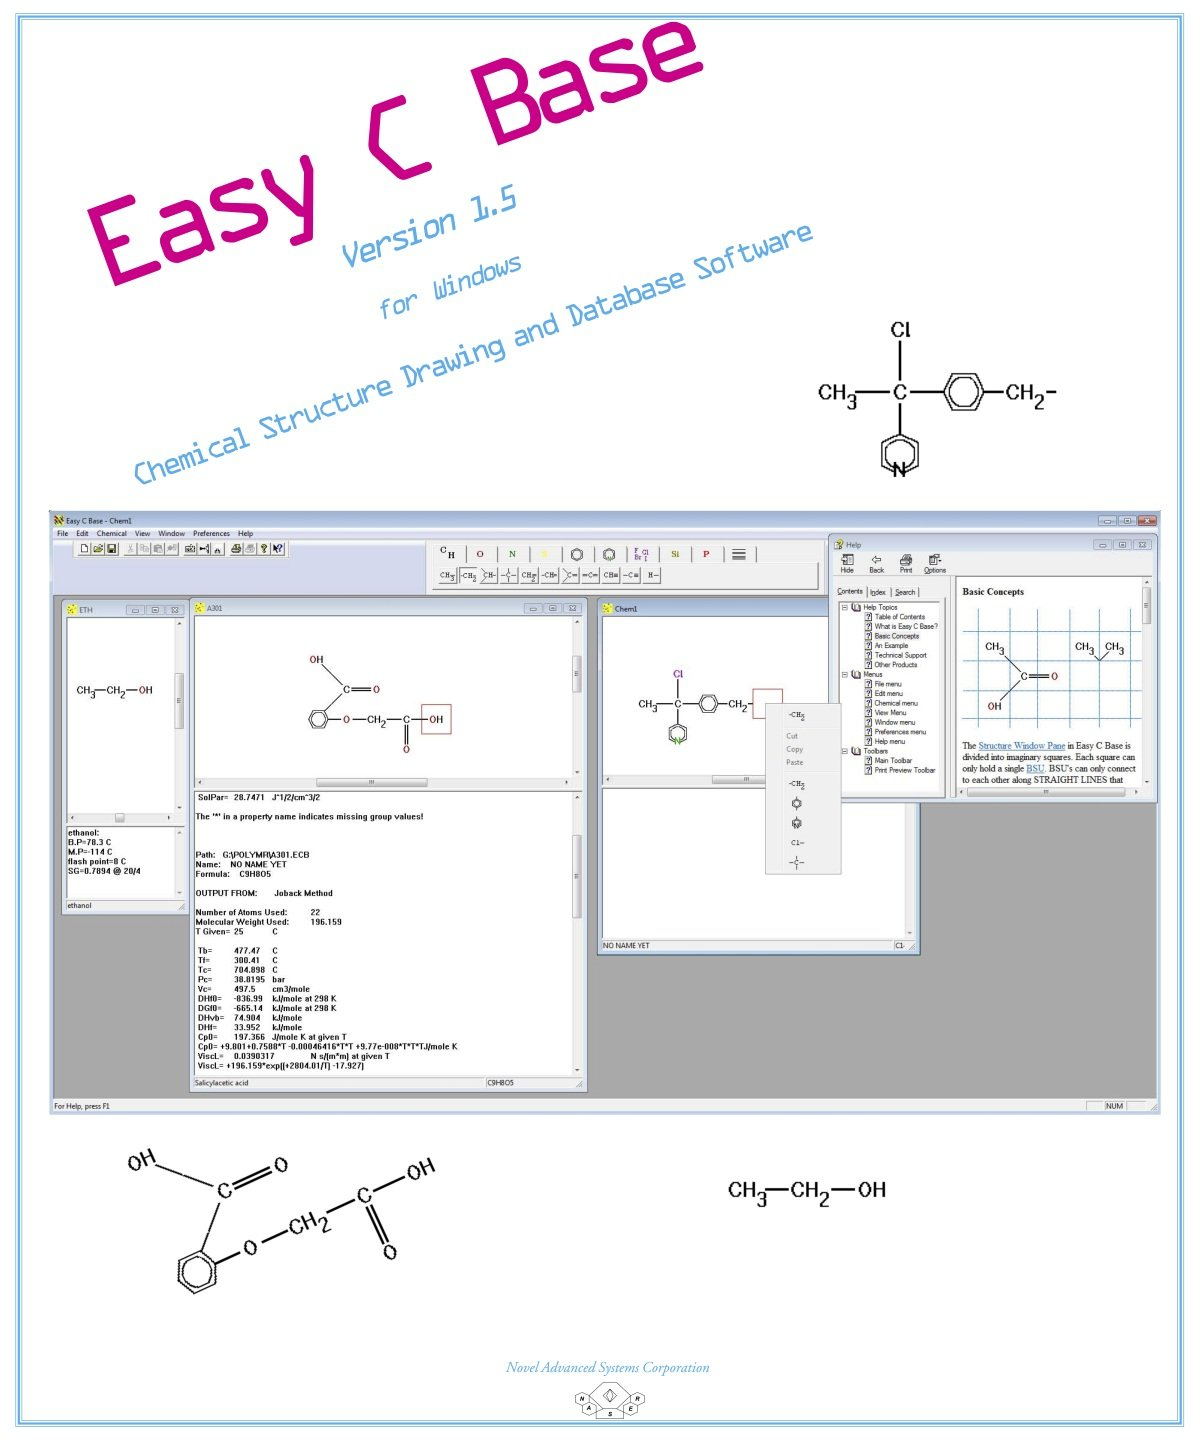 Easy C Base v1.5 [Download] by Novel Advanced Systems Corporation